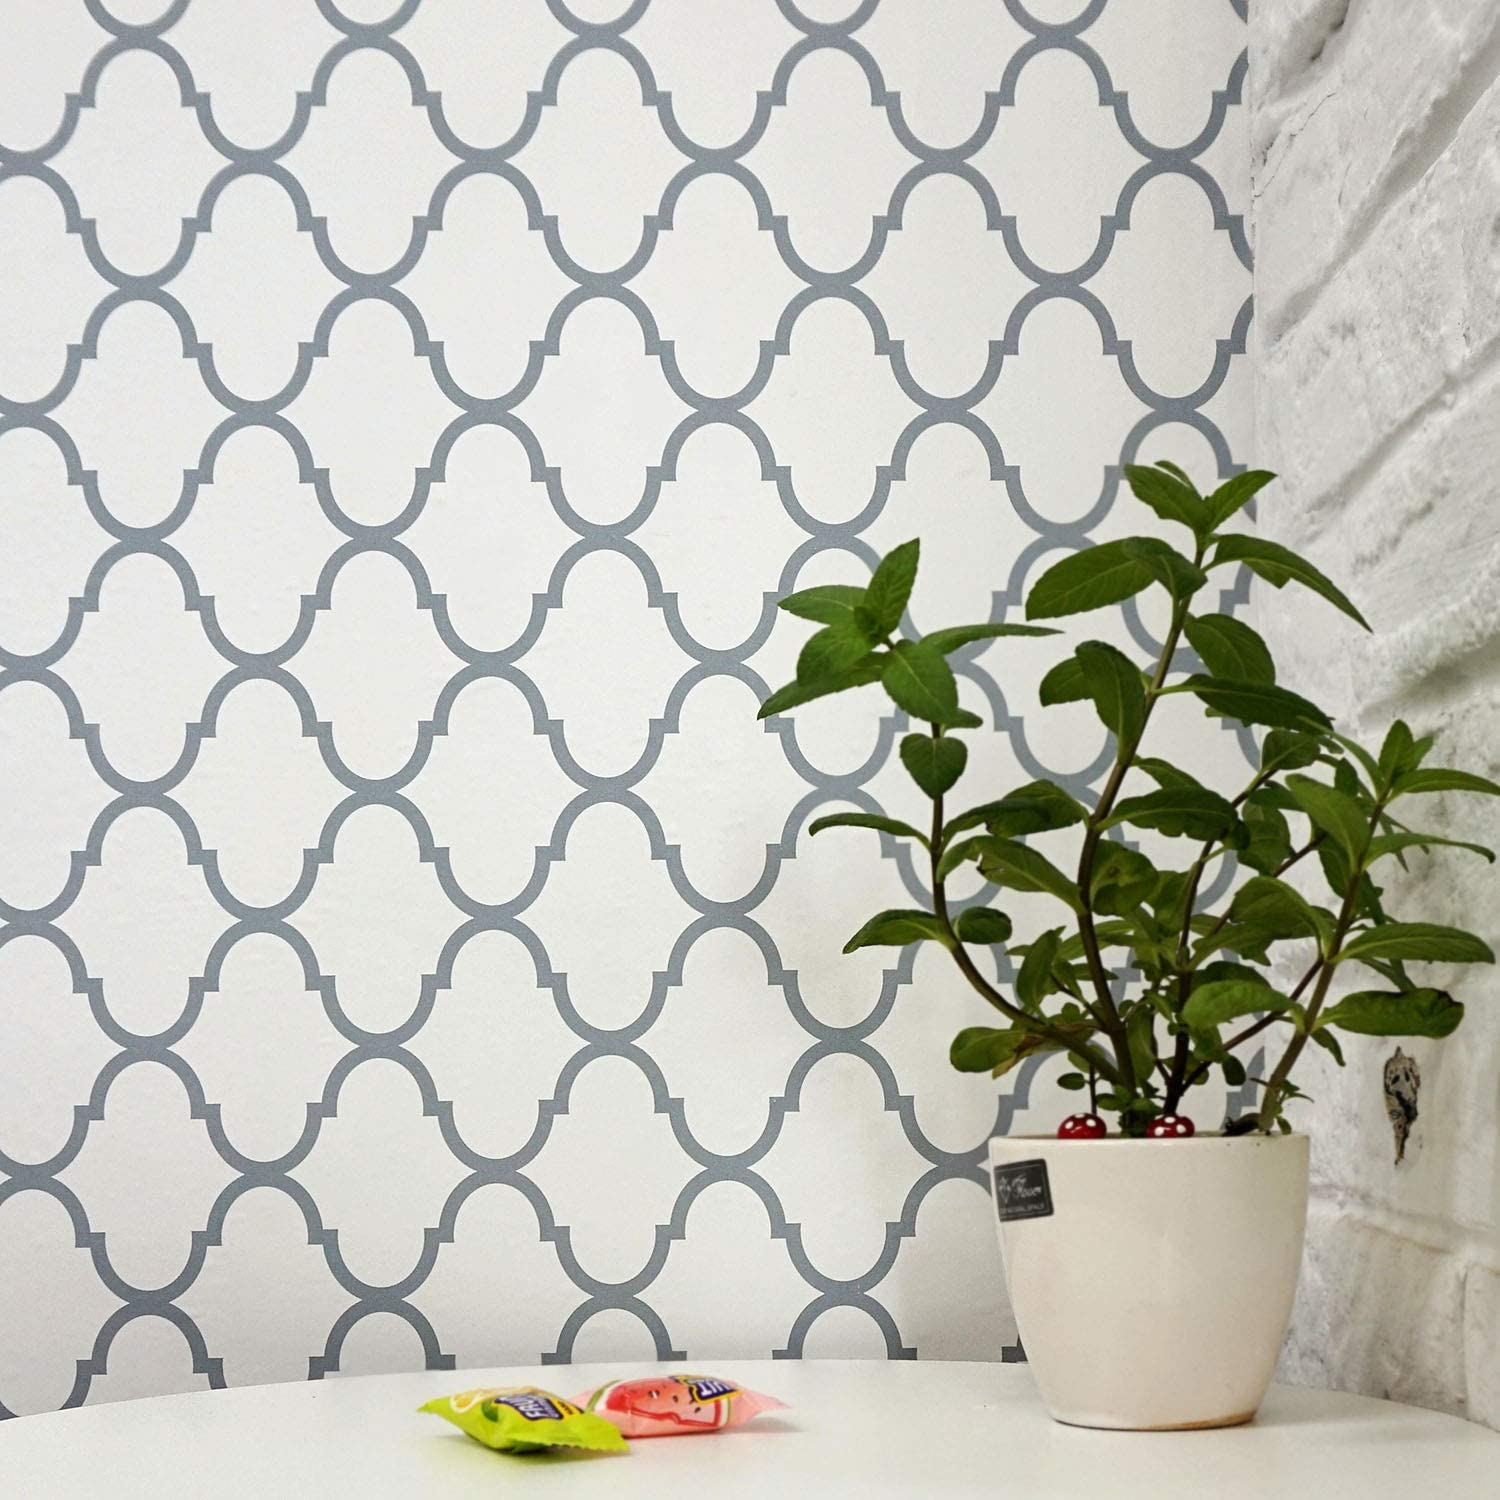 "Thicken Trellis Peel and Stick Wallpaper Self Adhesive Wallpaper Upgrade Trellis Removable Wallpaper Trellis Wallpaper Modern Wall Covering Decor Shelf Drawer Liner Vinyl Film New Version197""x18"""